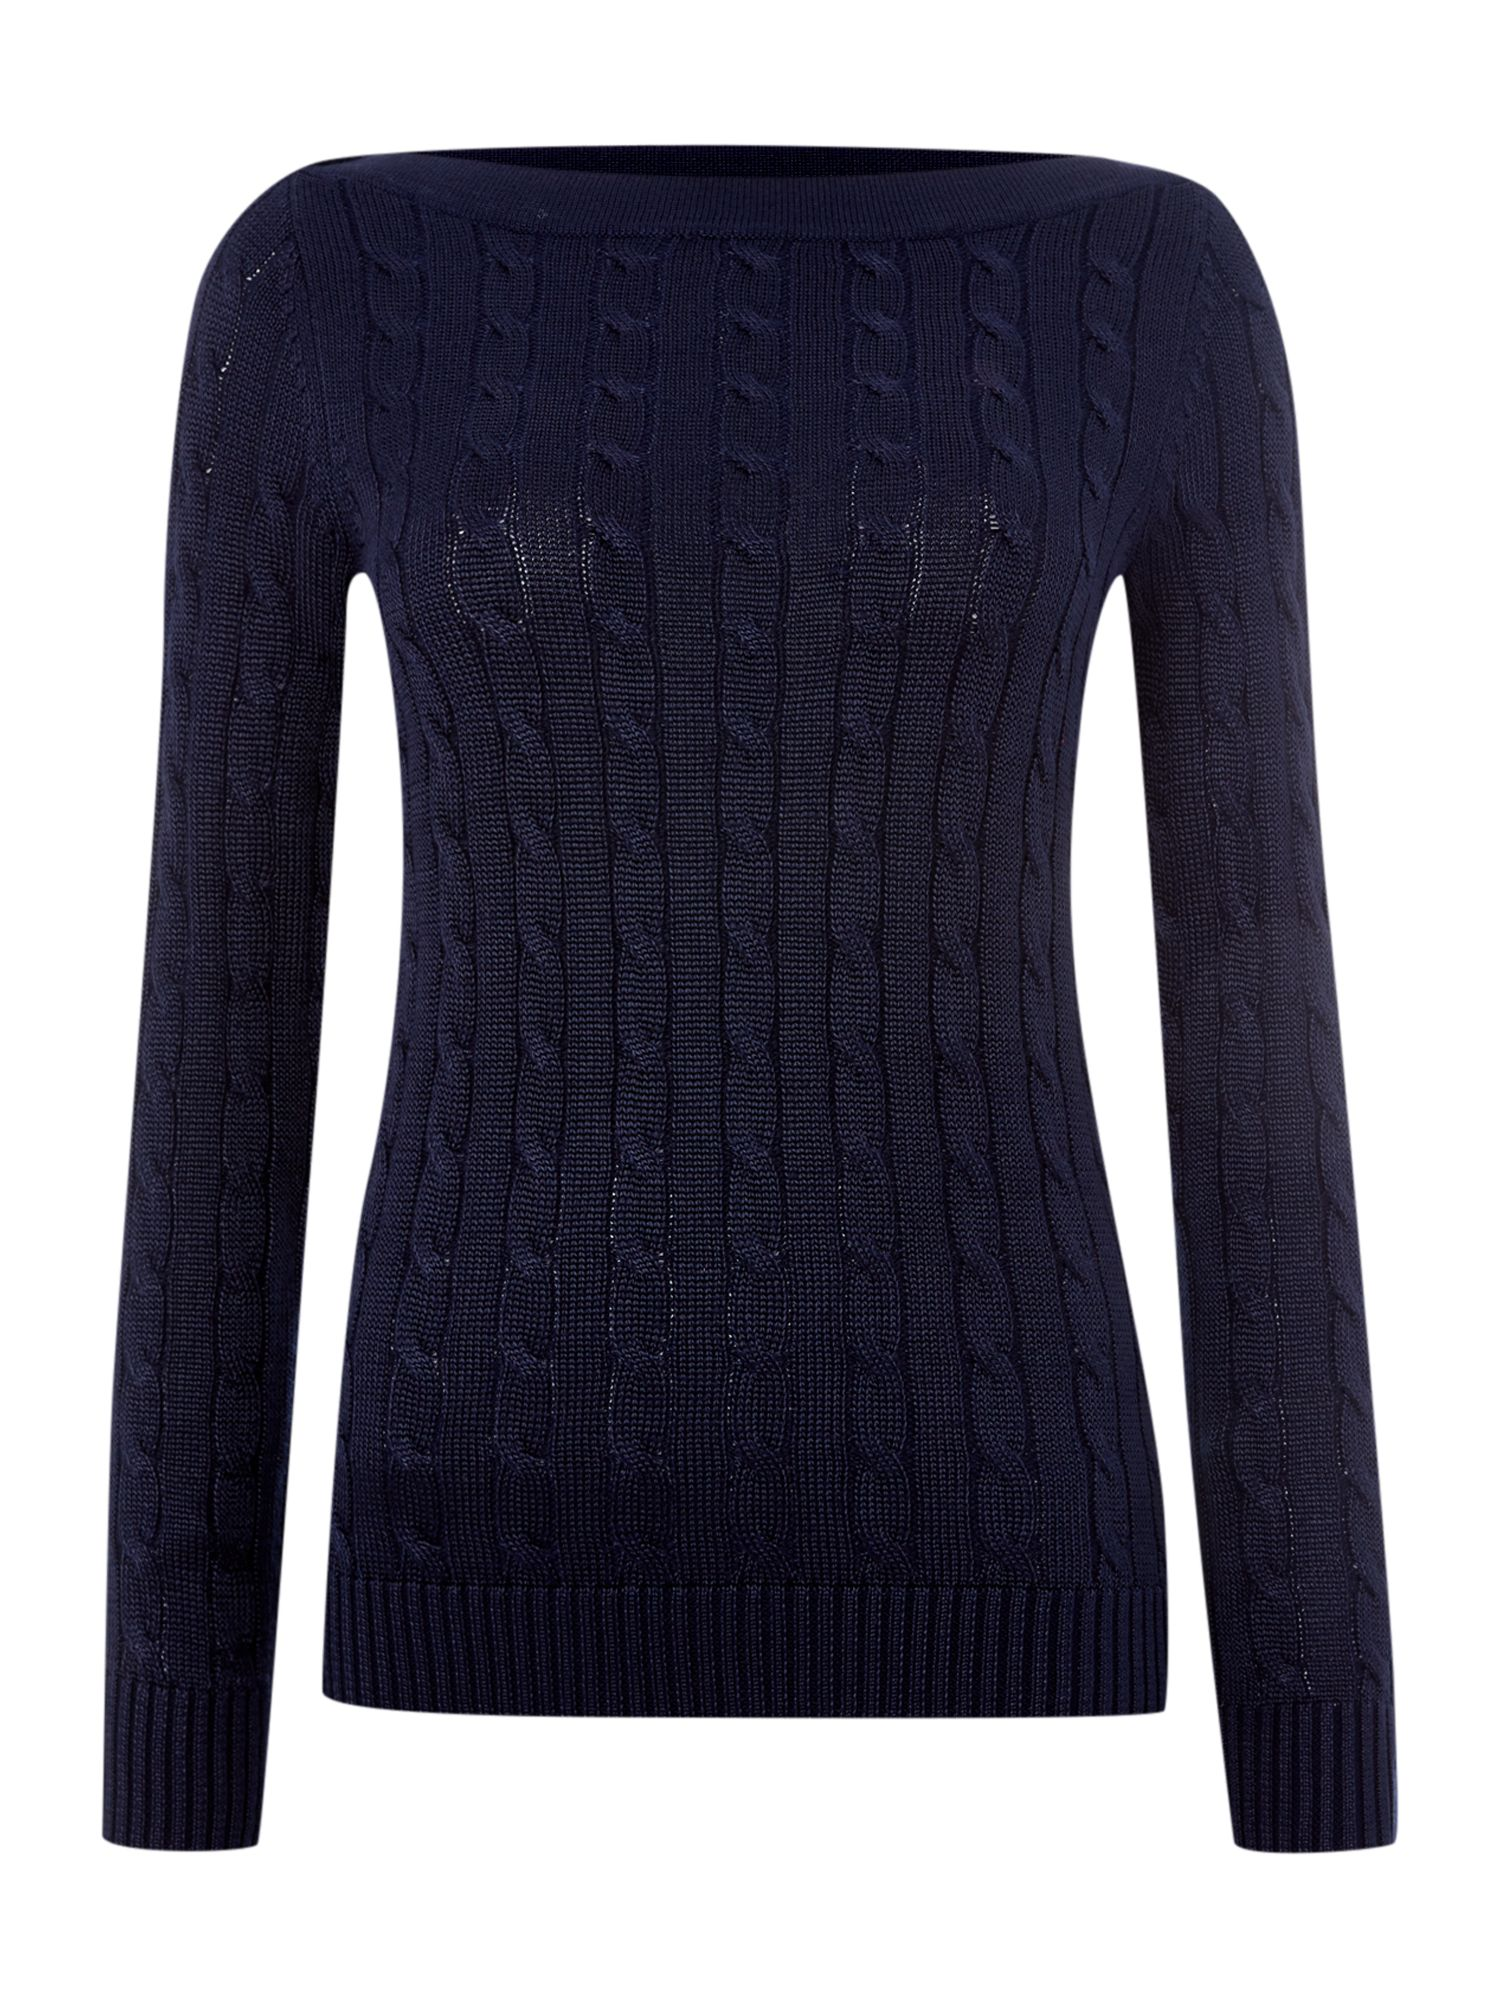 Boatneck cable knitted top